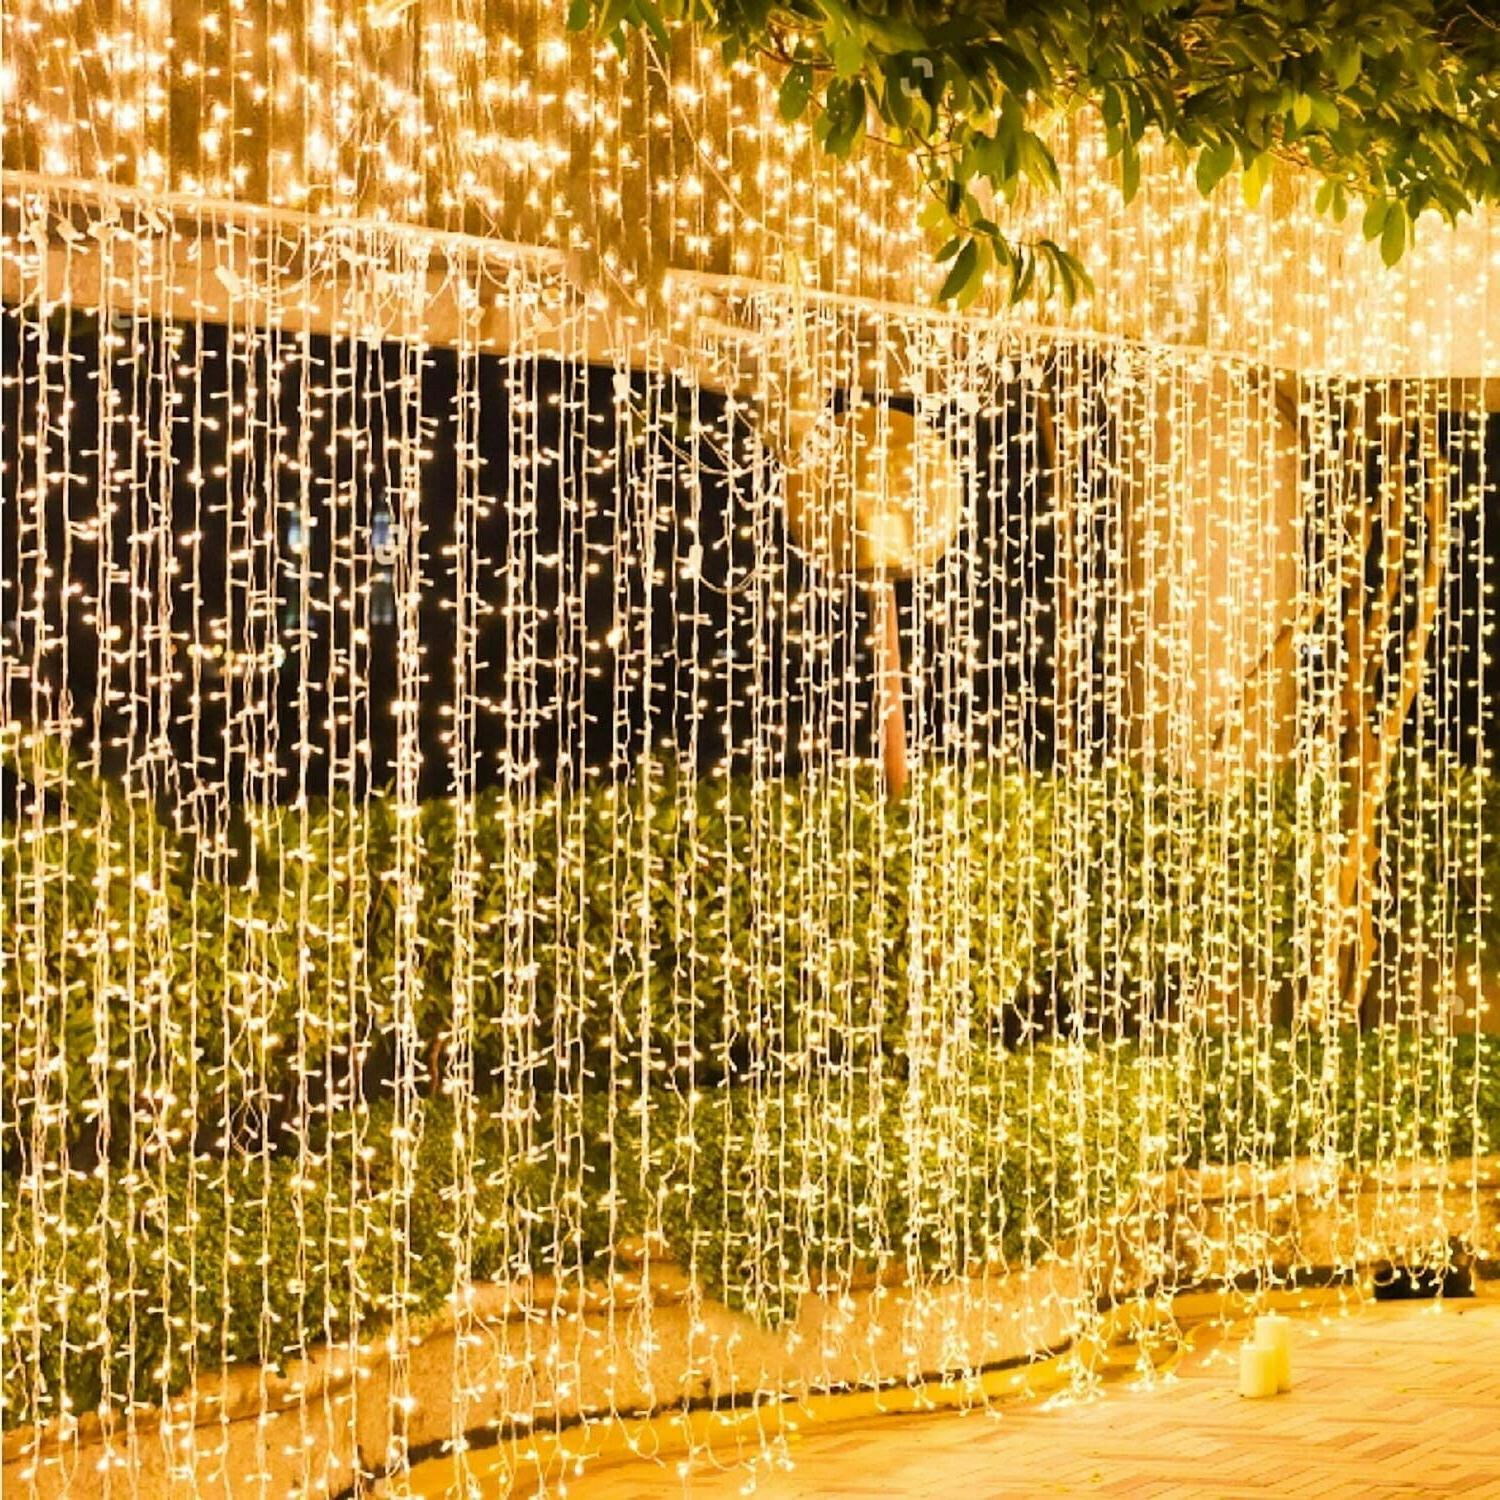 300 Lights, 98.5 in String with